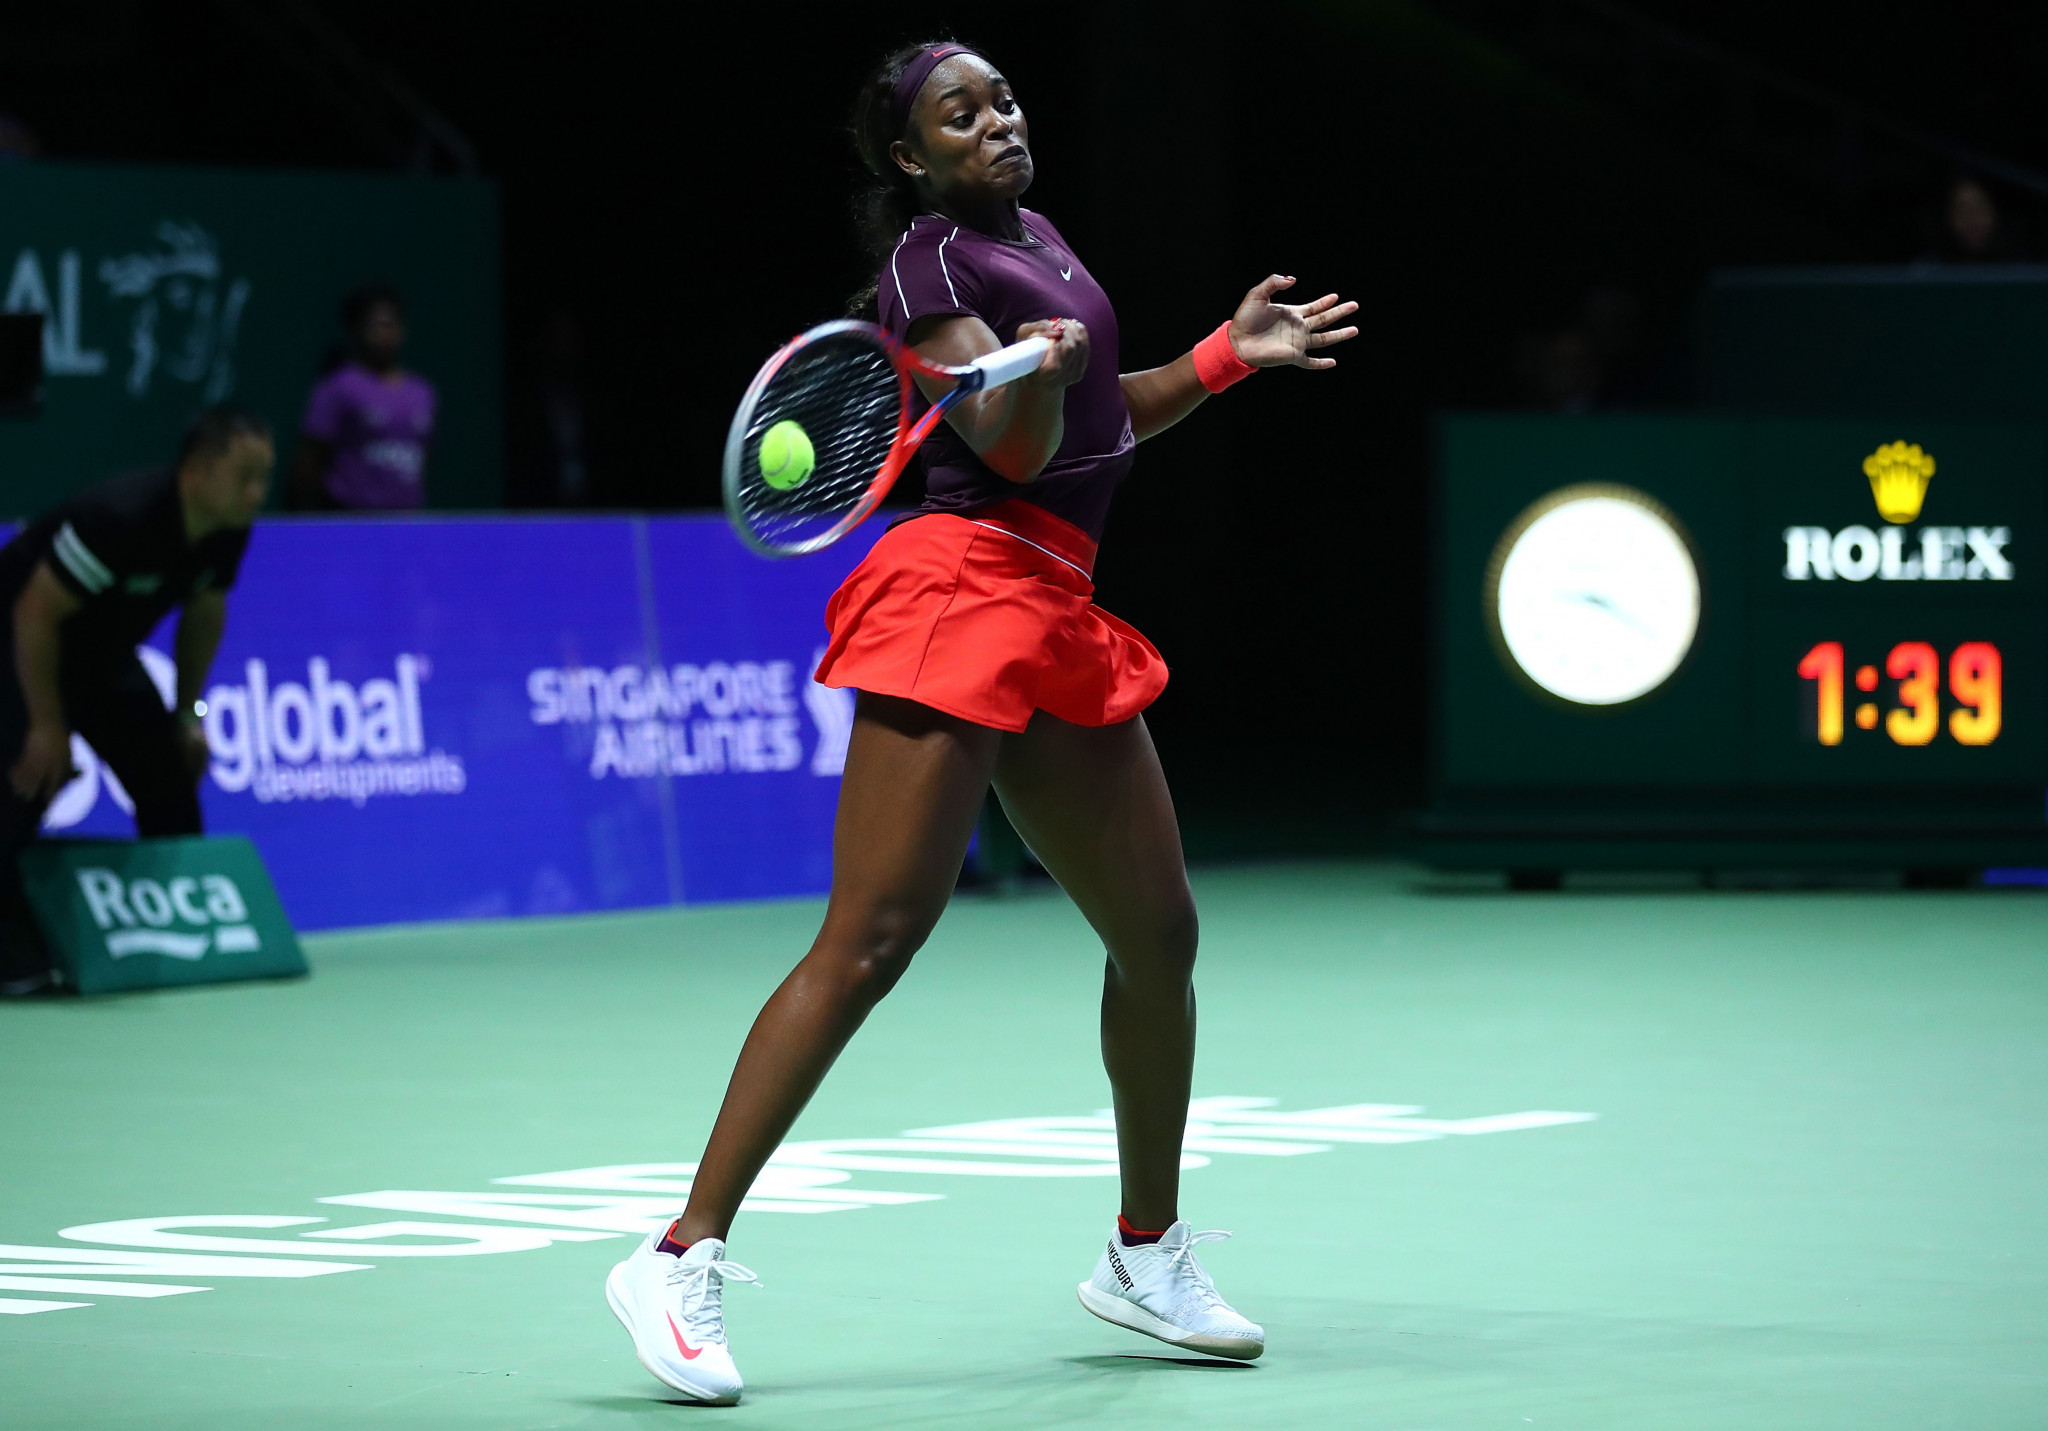 Sloane Stephens fought back to reach her first final at the tournament ©Getty Images